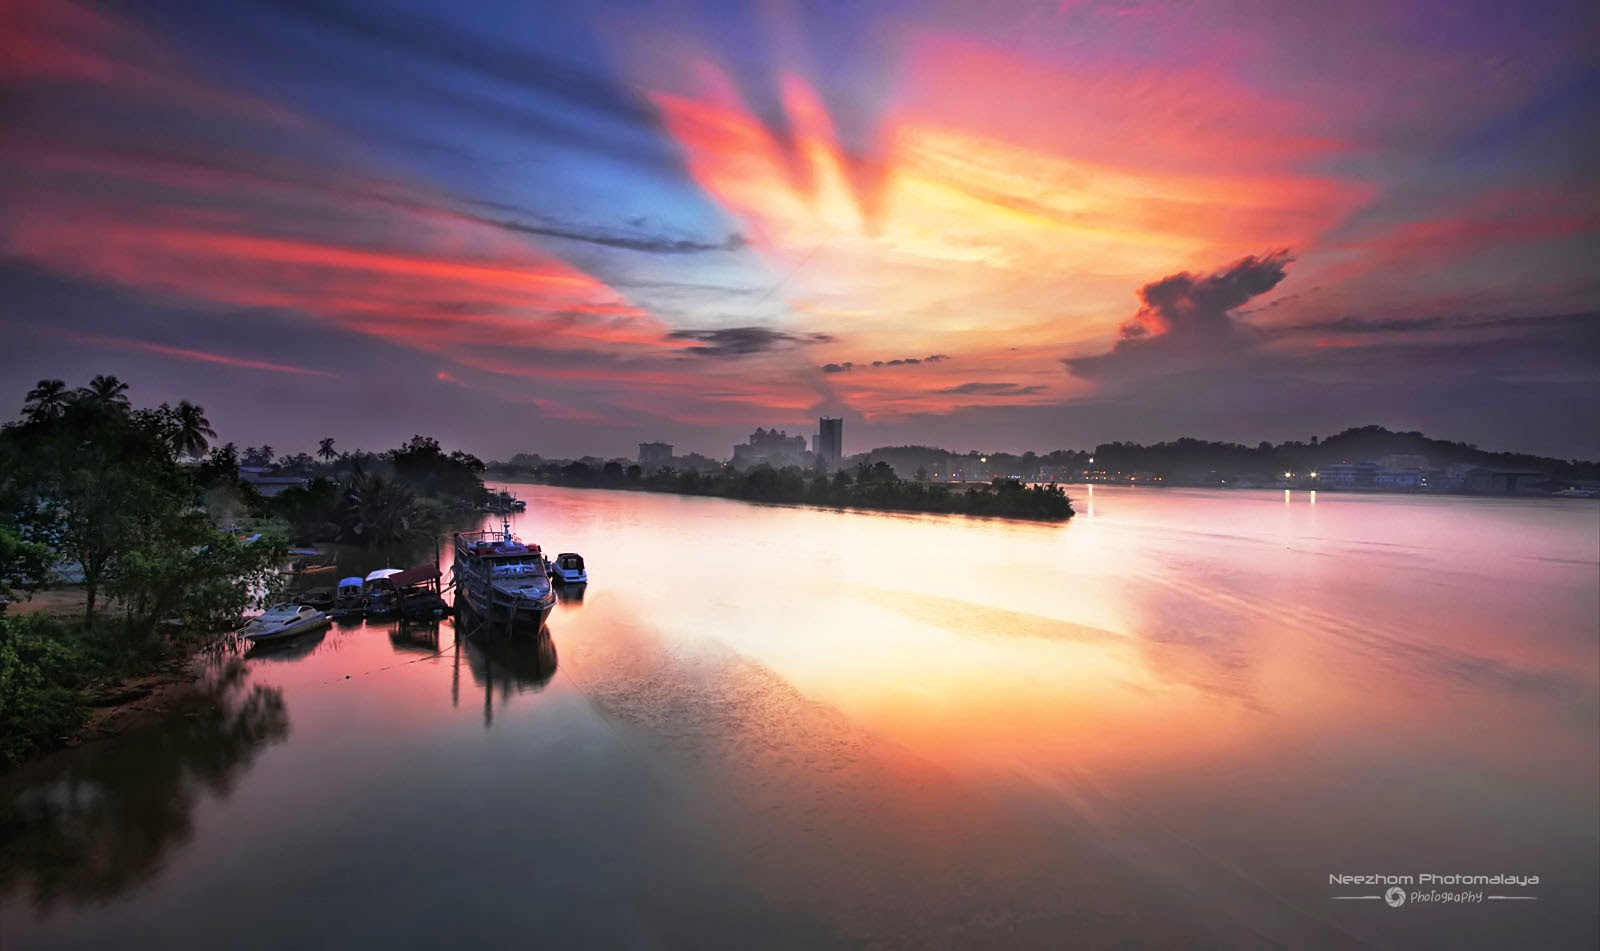 Sunrise from Sultan Mahmud bridge